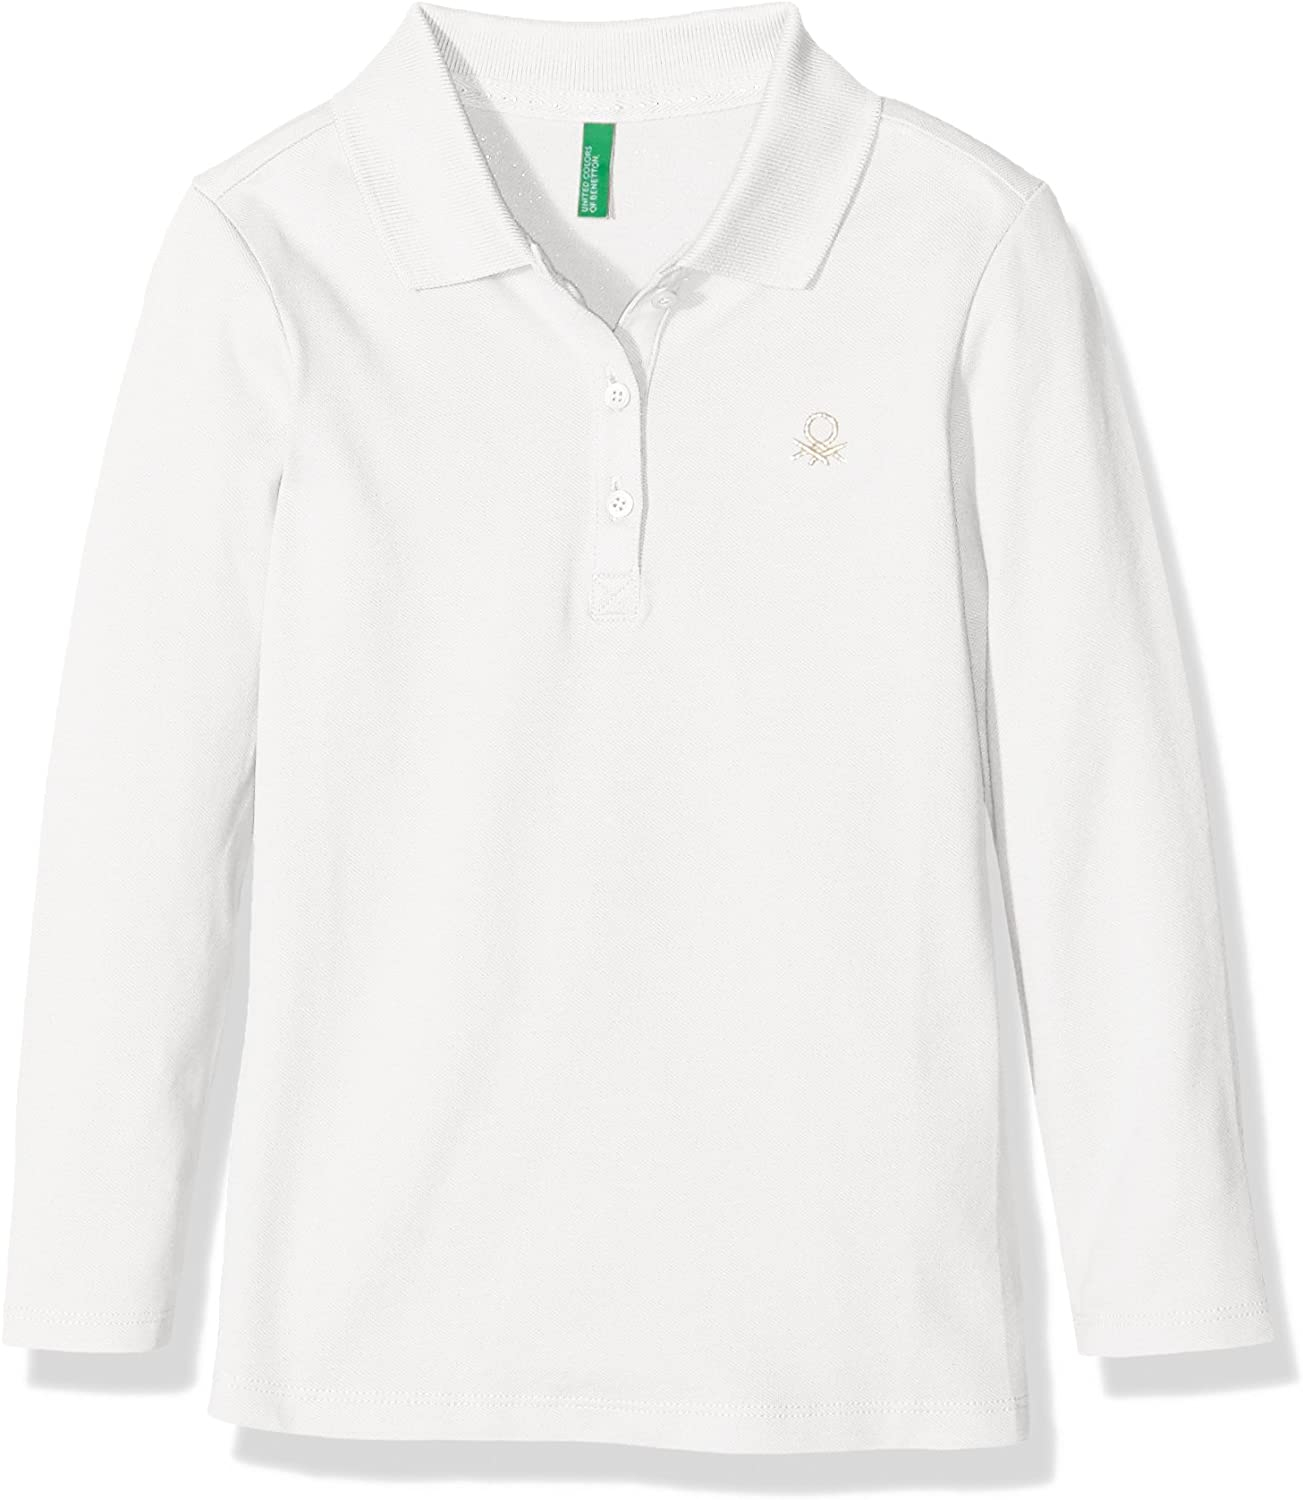 United Colors of Benetton 3BG8C3047 Polo, Blanco (White), 12-18 ...